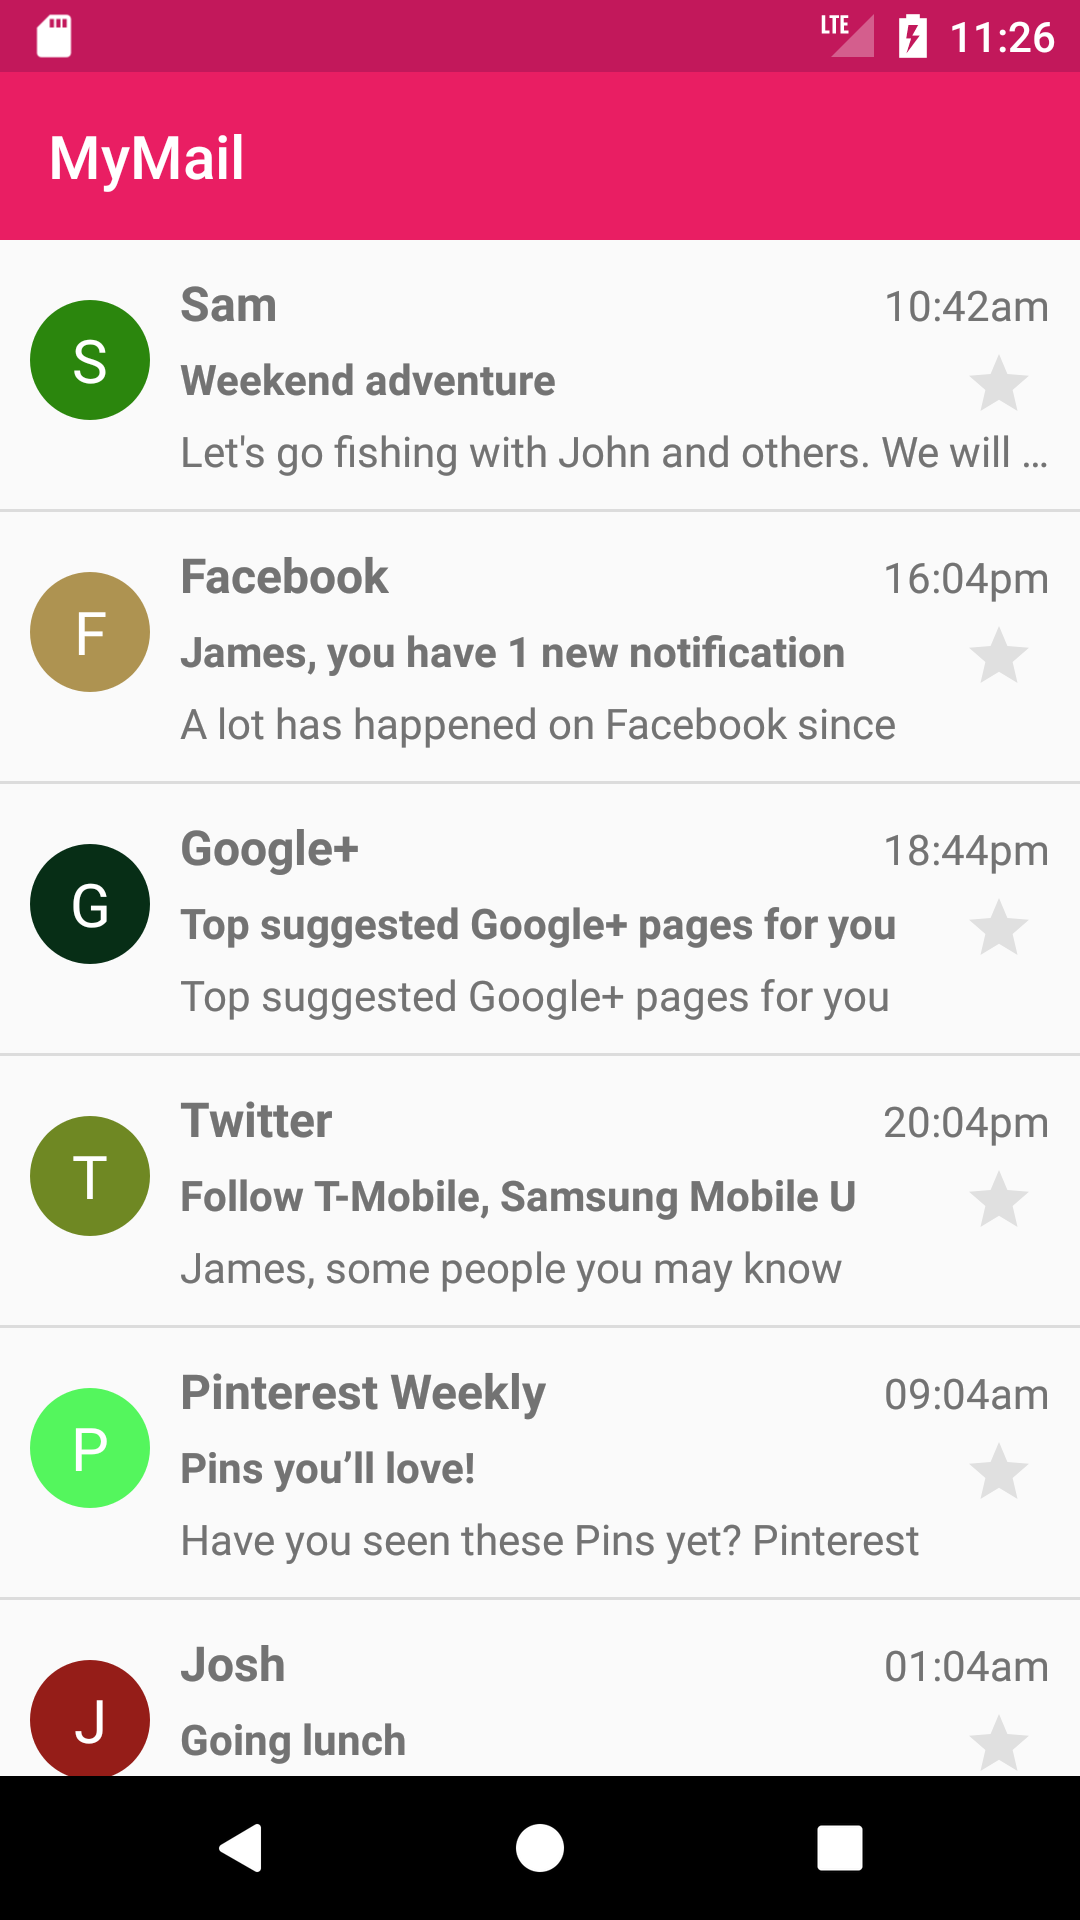 Android Recyclerview Example - Show List of Emails Using